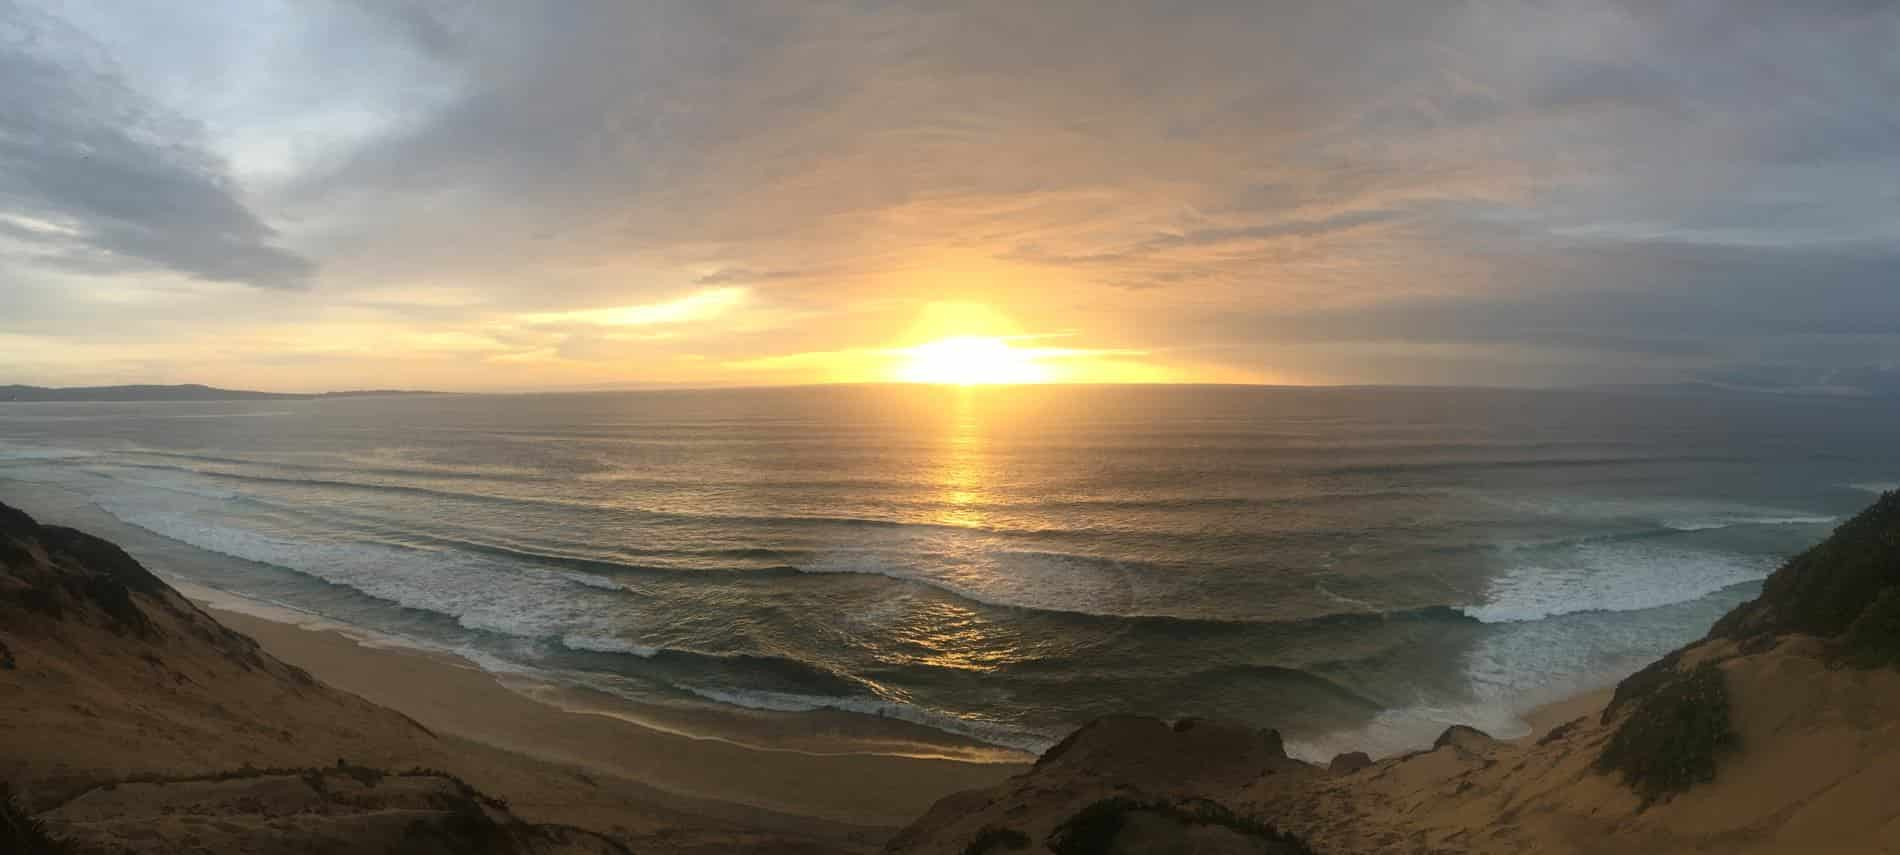 Stunning panoramic view of the sun setting over the Pacific Ocean